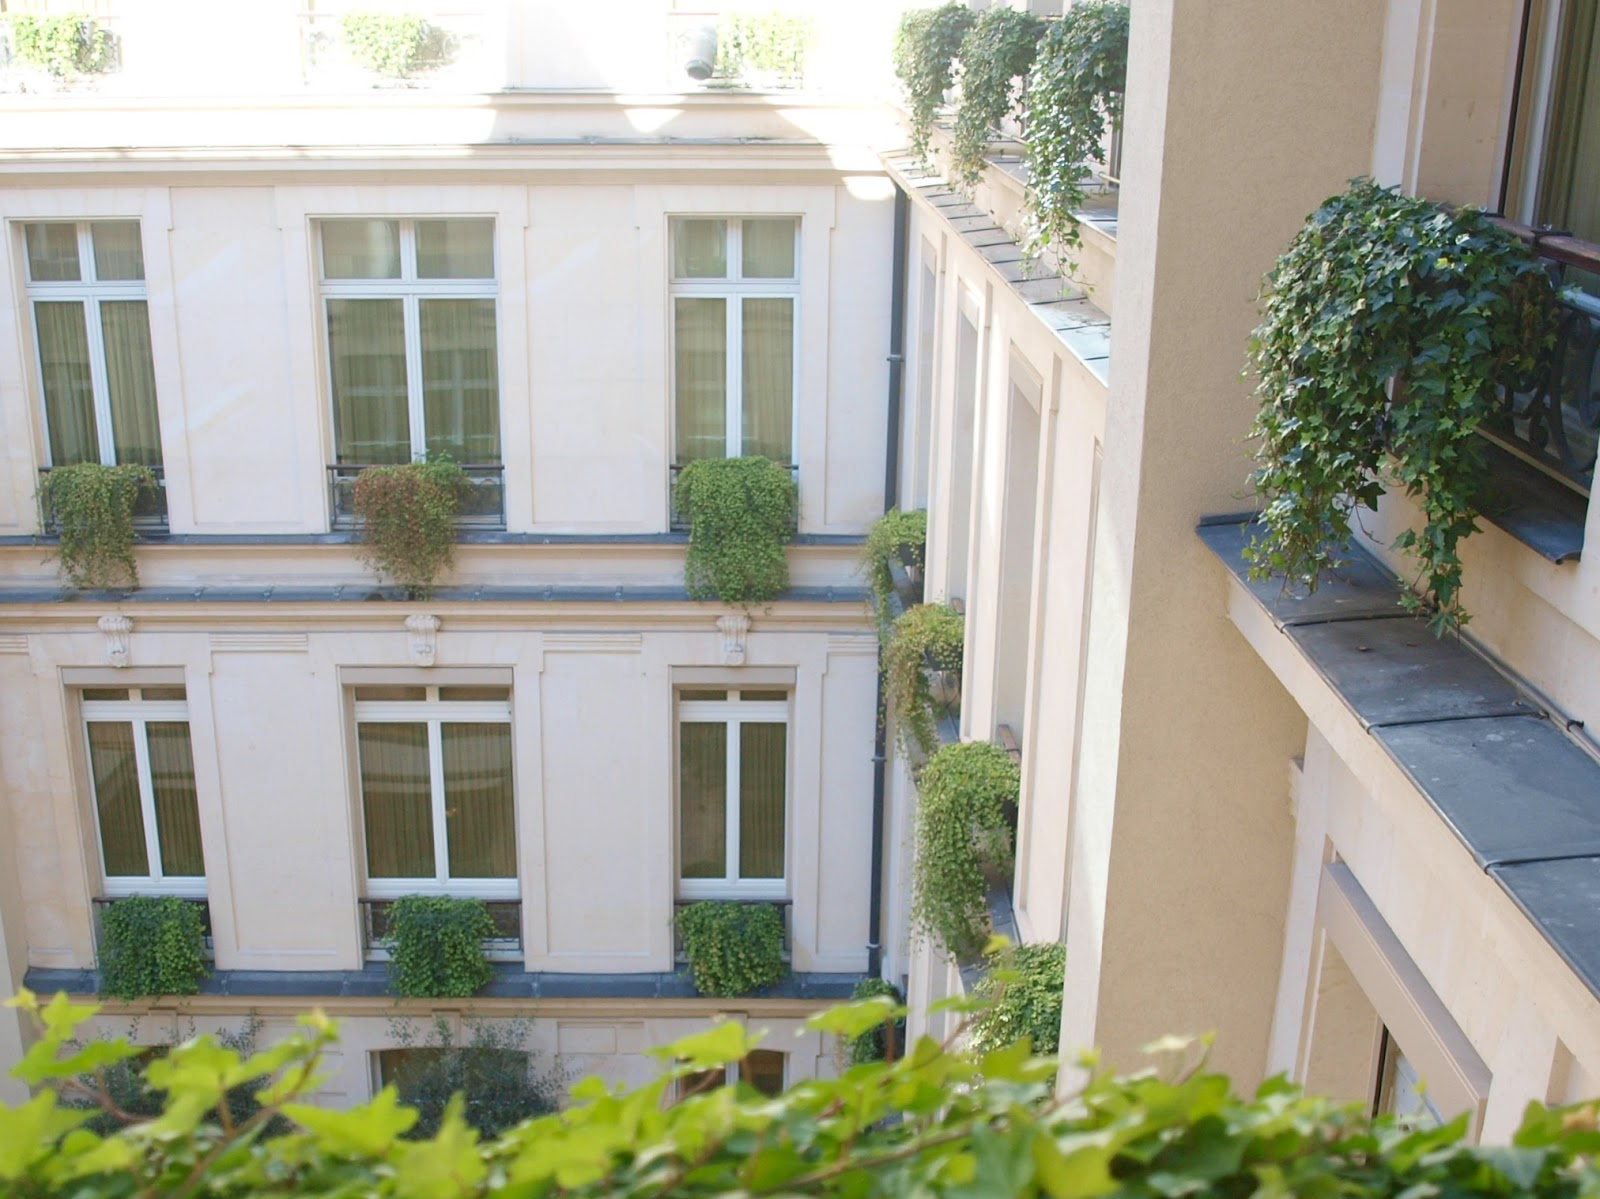 View into courtyard from suite at Park Hyatt Paris - by Hello Lovely Studio